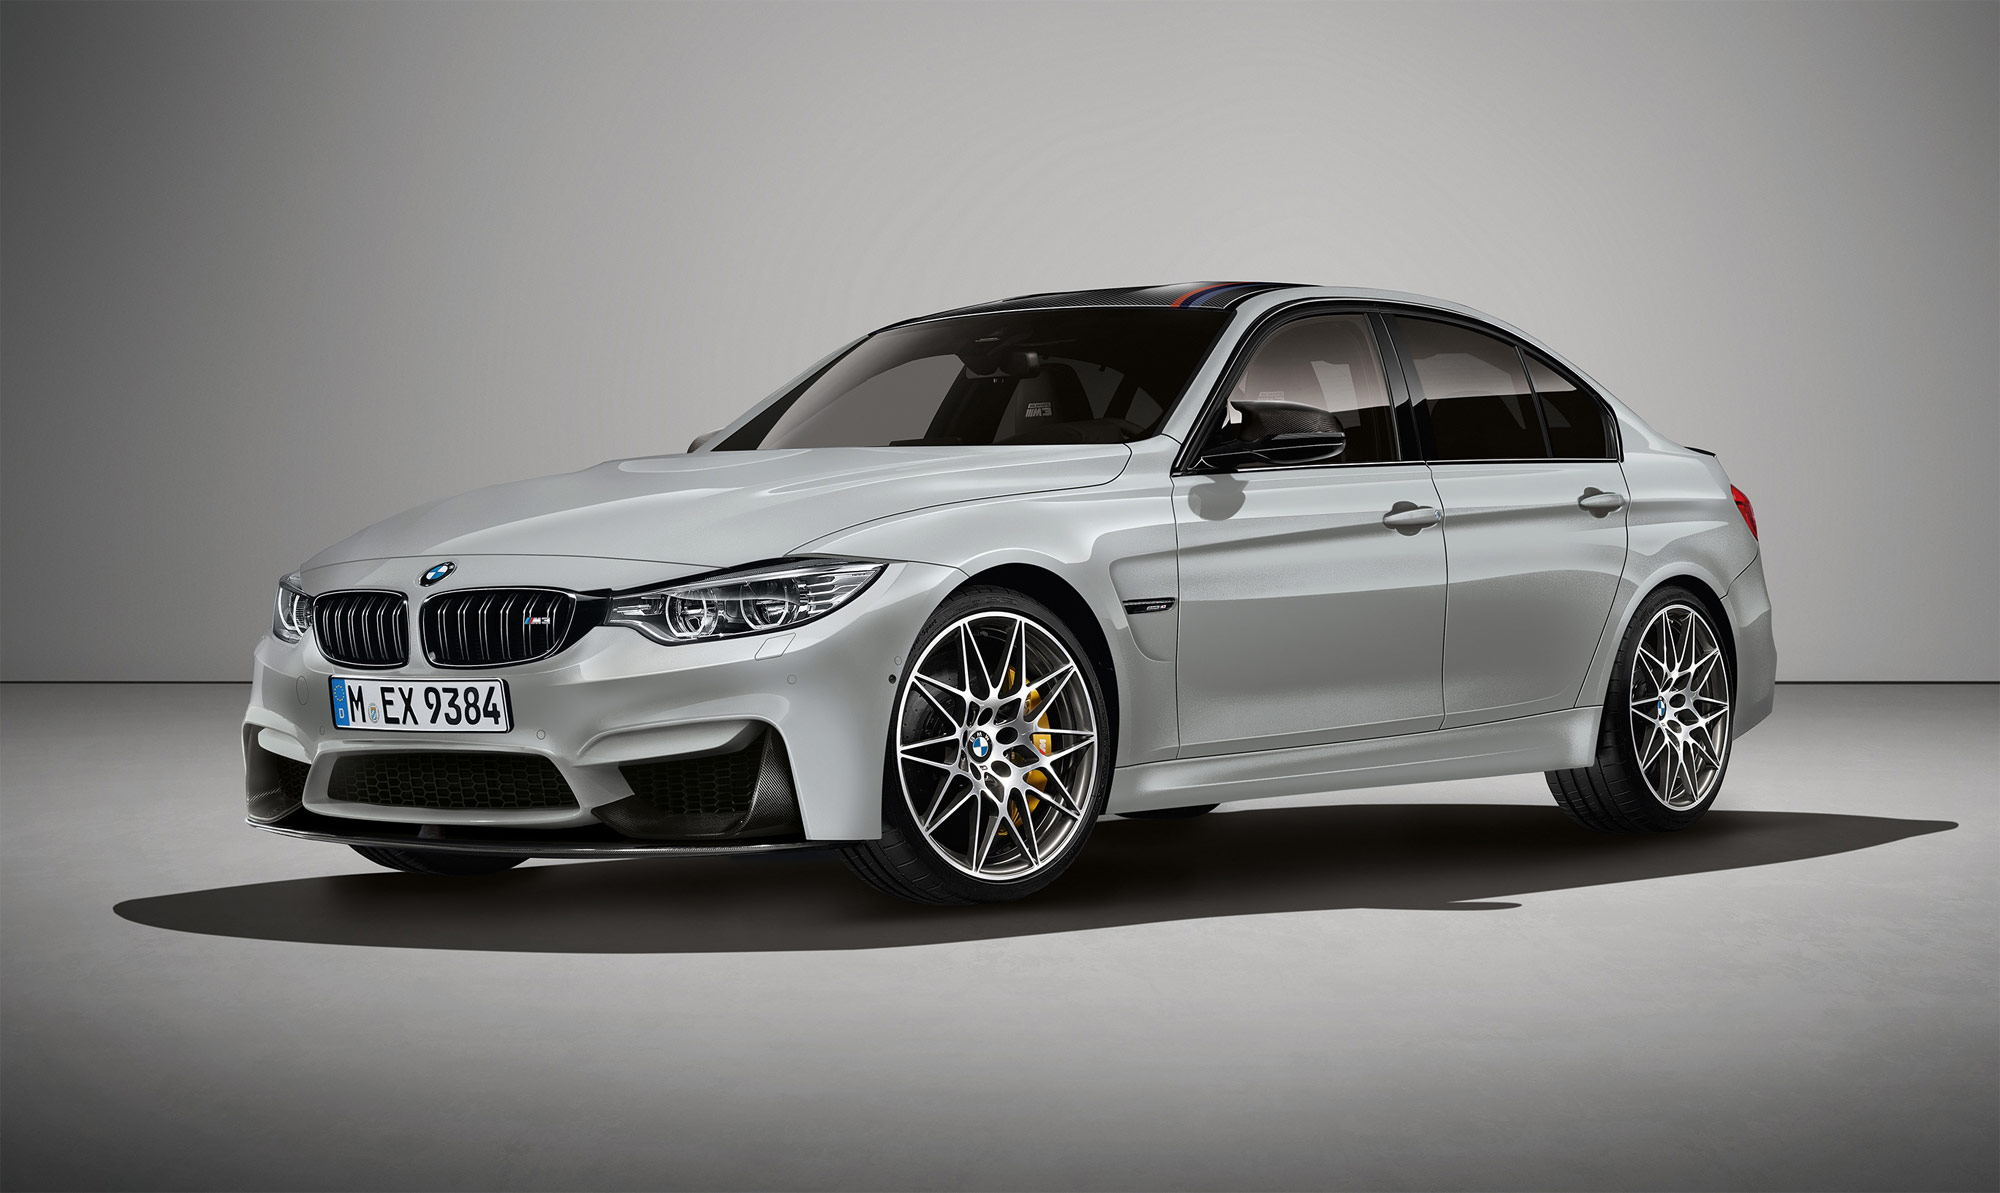 The Bmw M3 30 Jahre Edition Celebrating 30 Years Of